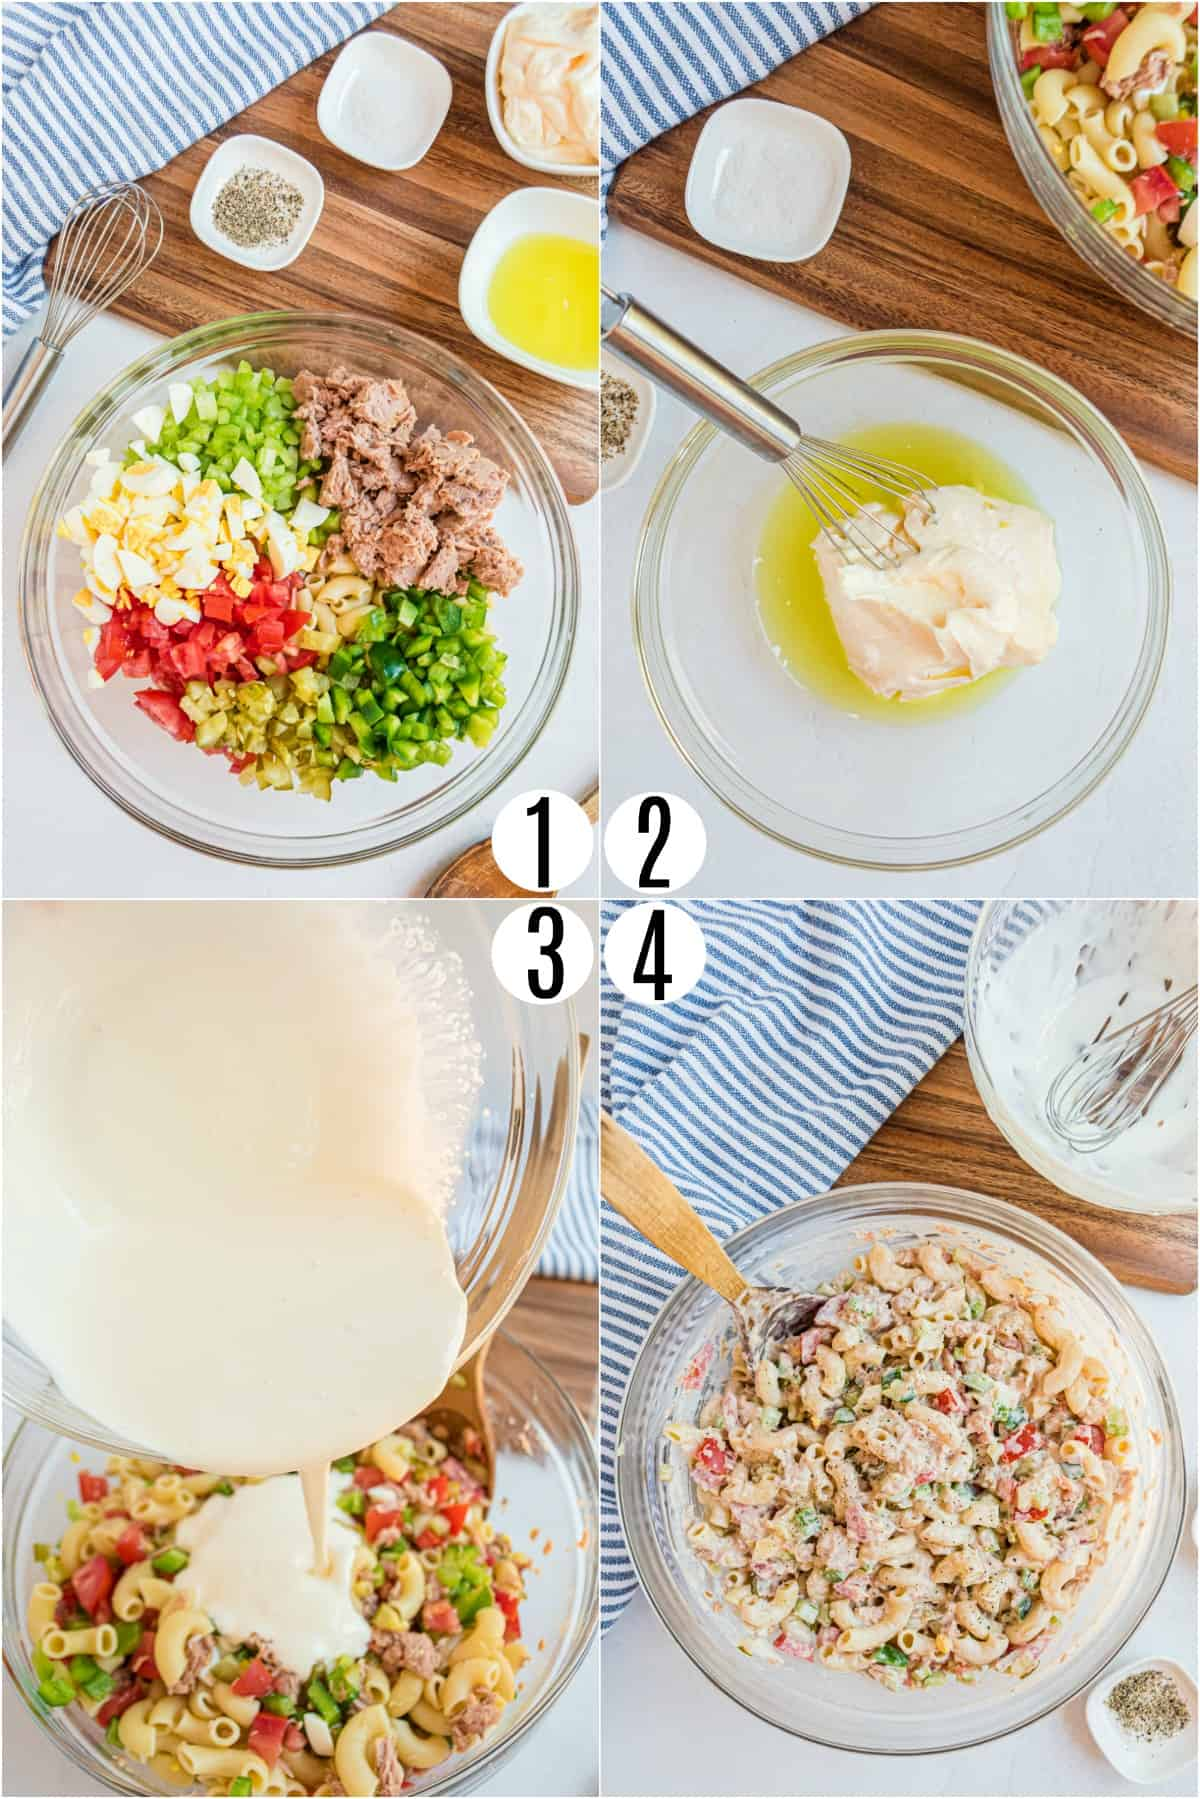 Step by step photos showing how to make macaroni pasta salad.